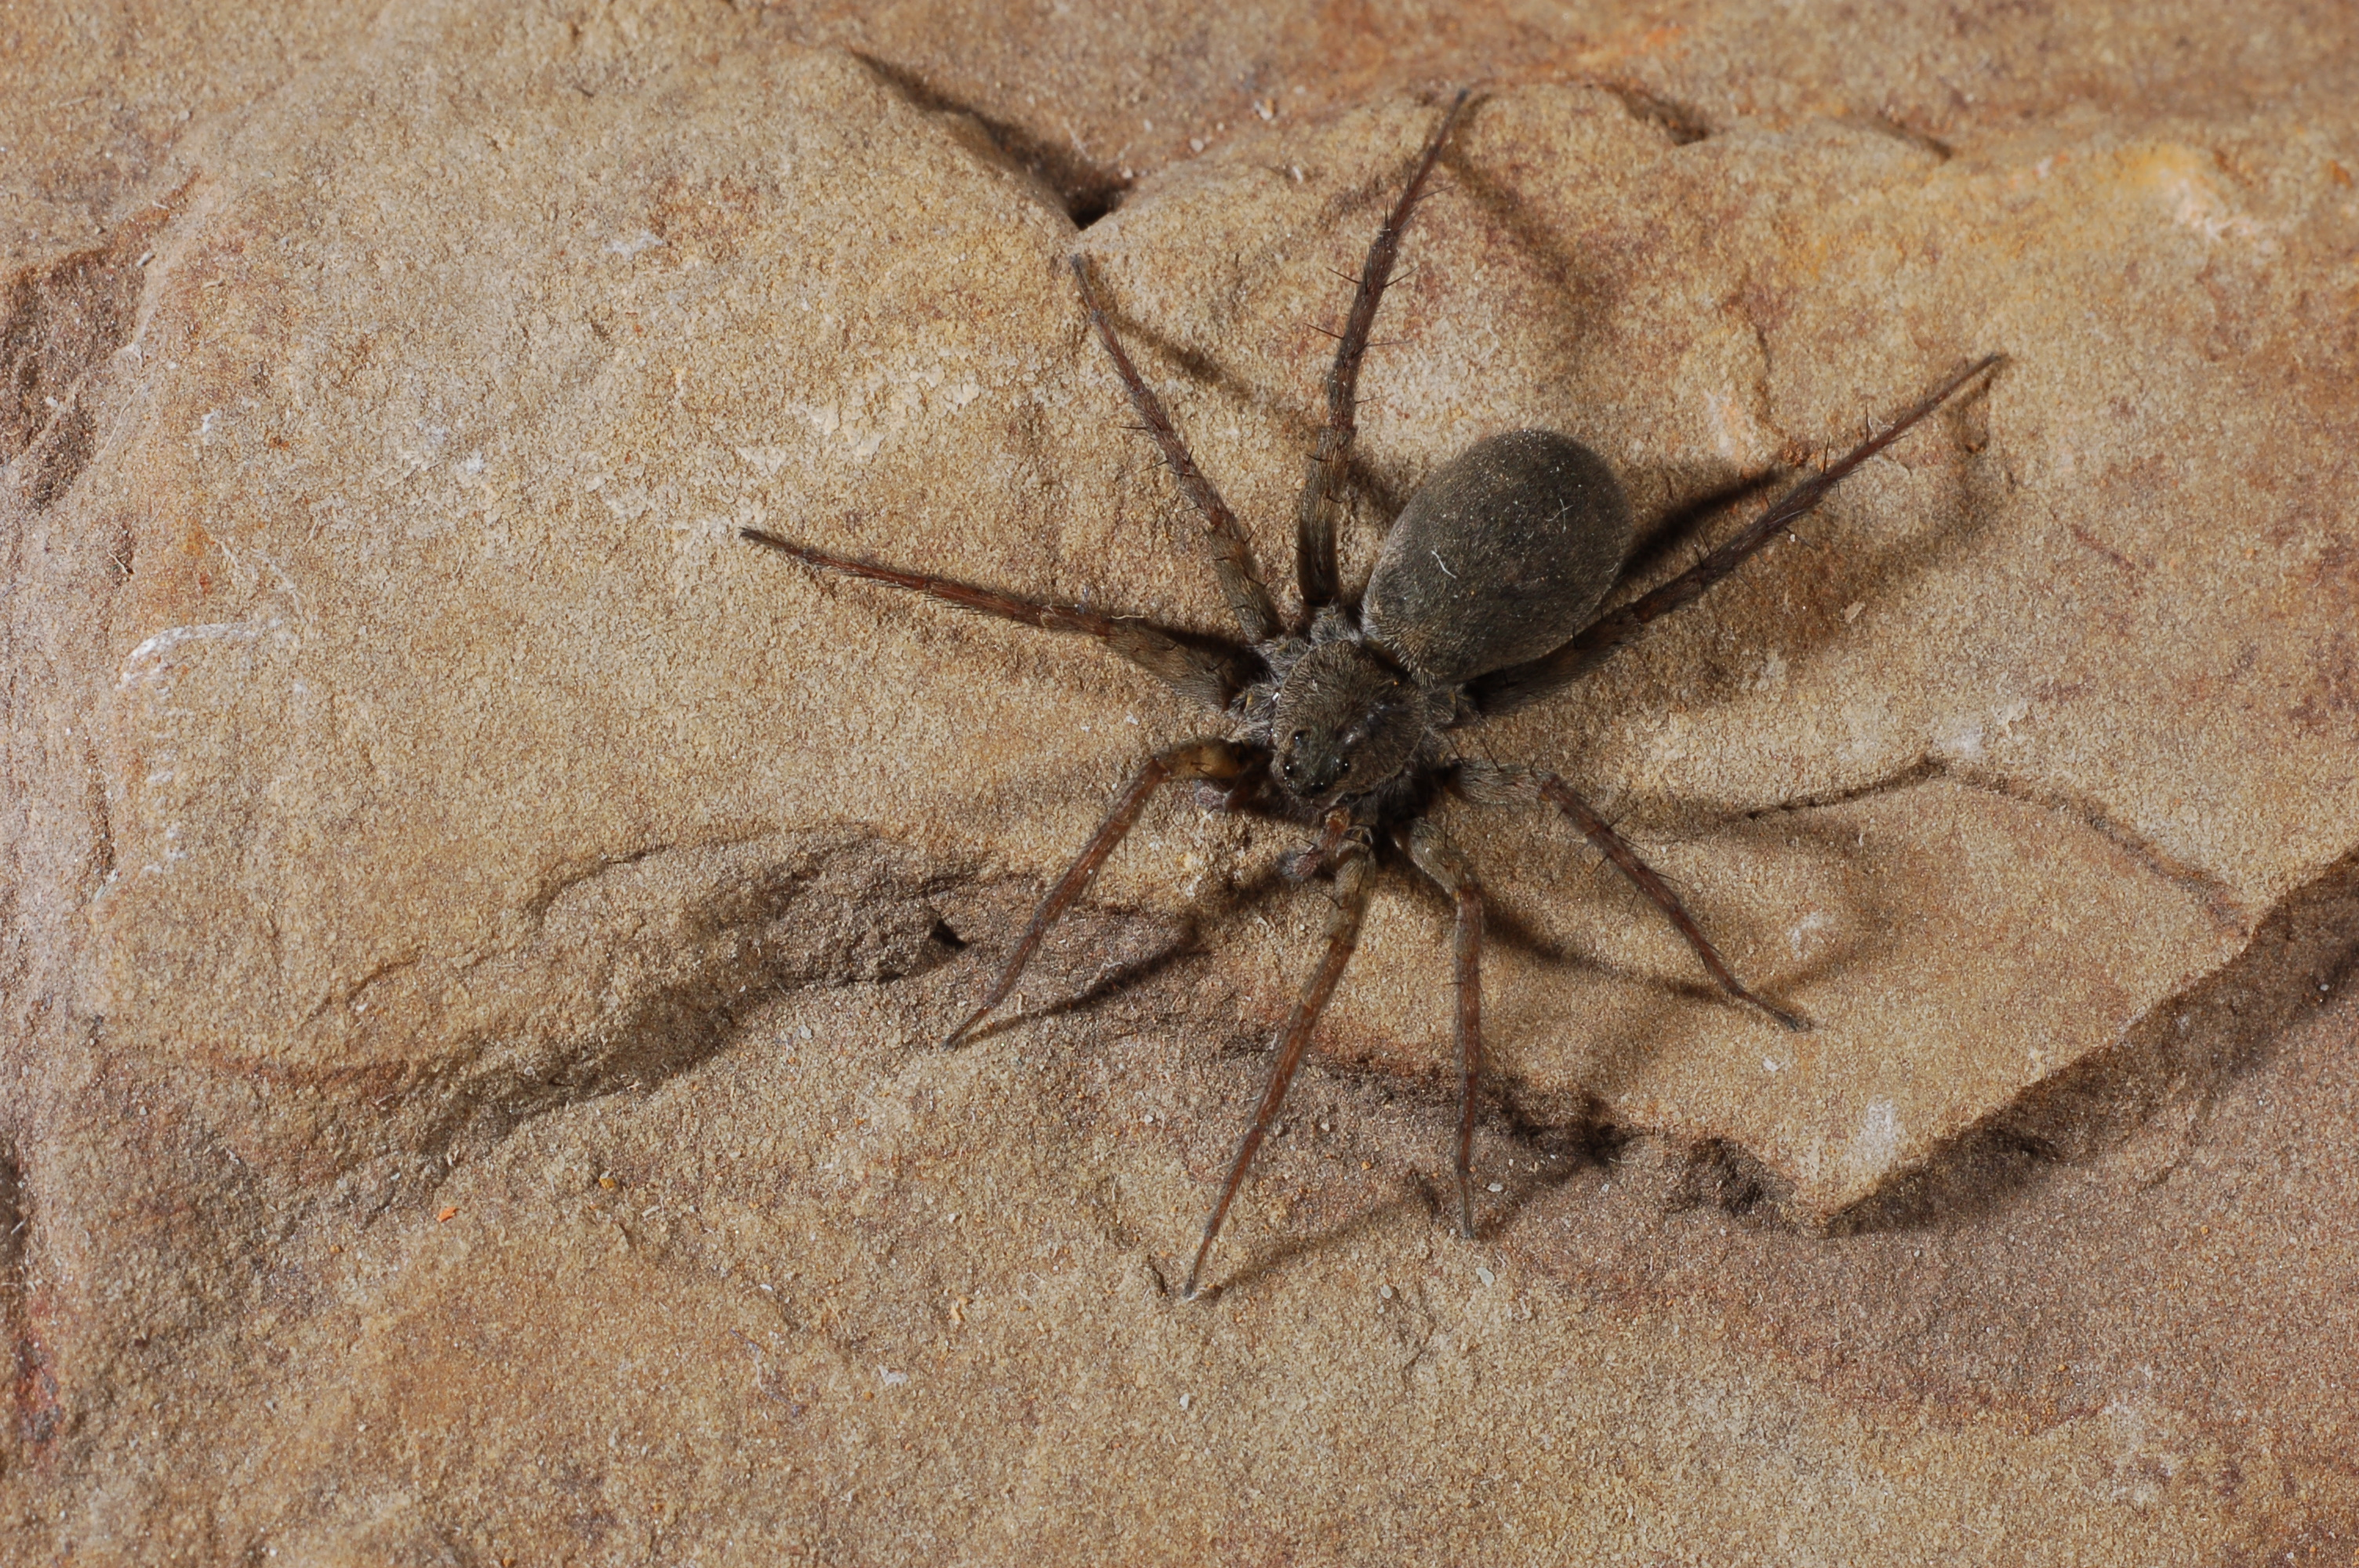 spidering on Gibraltar Island | spidersrule